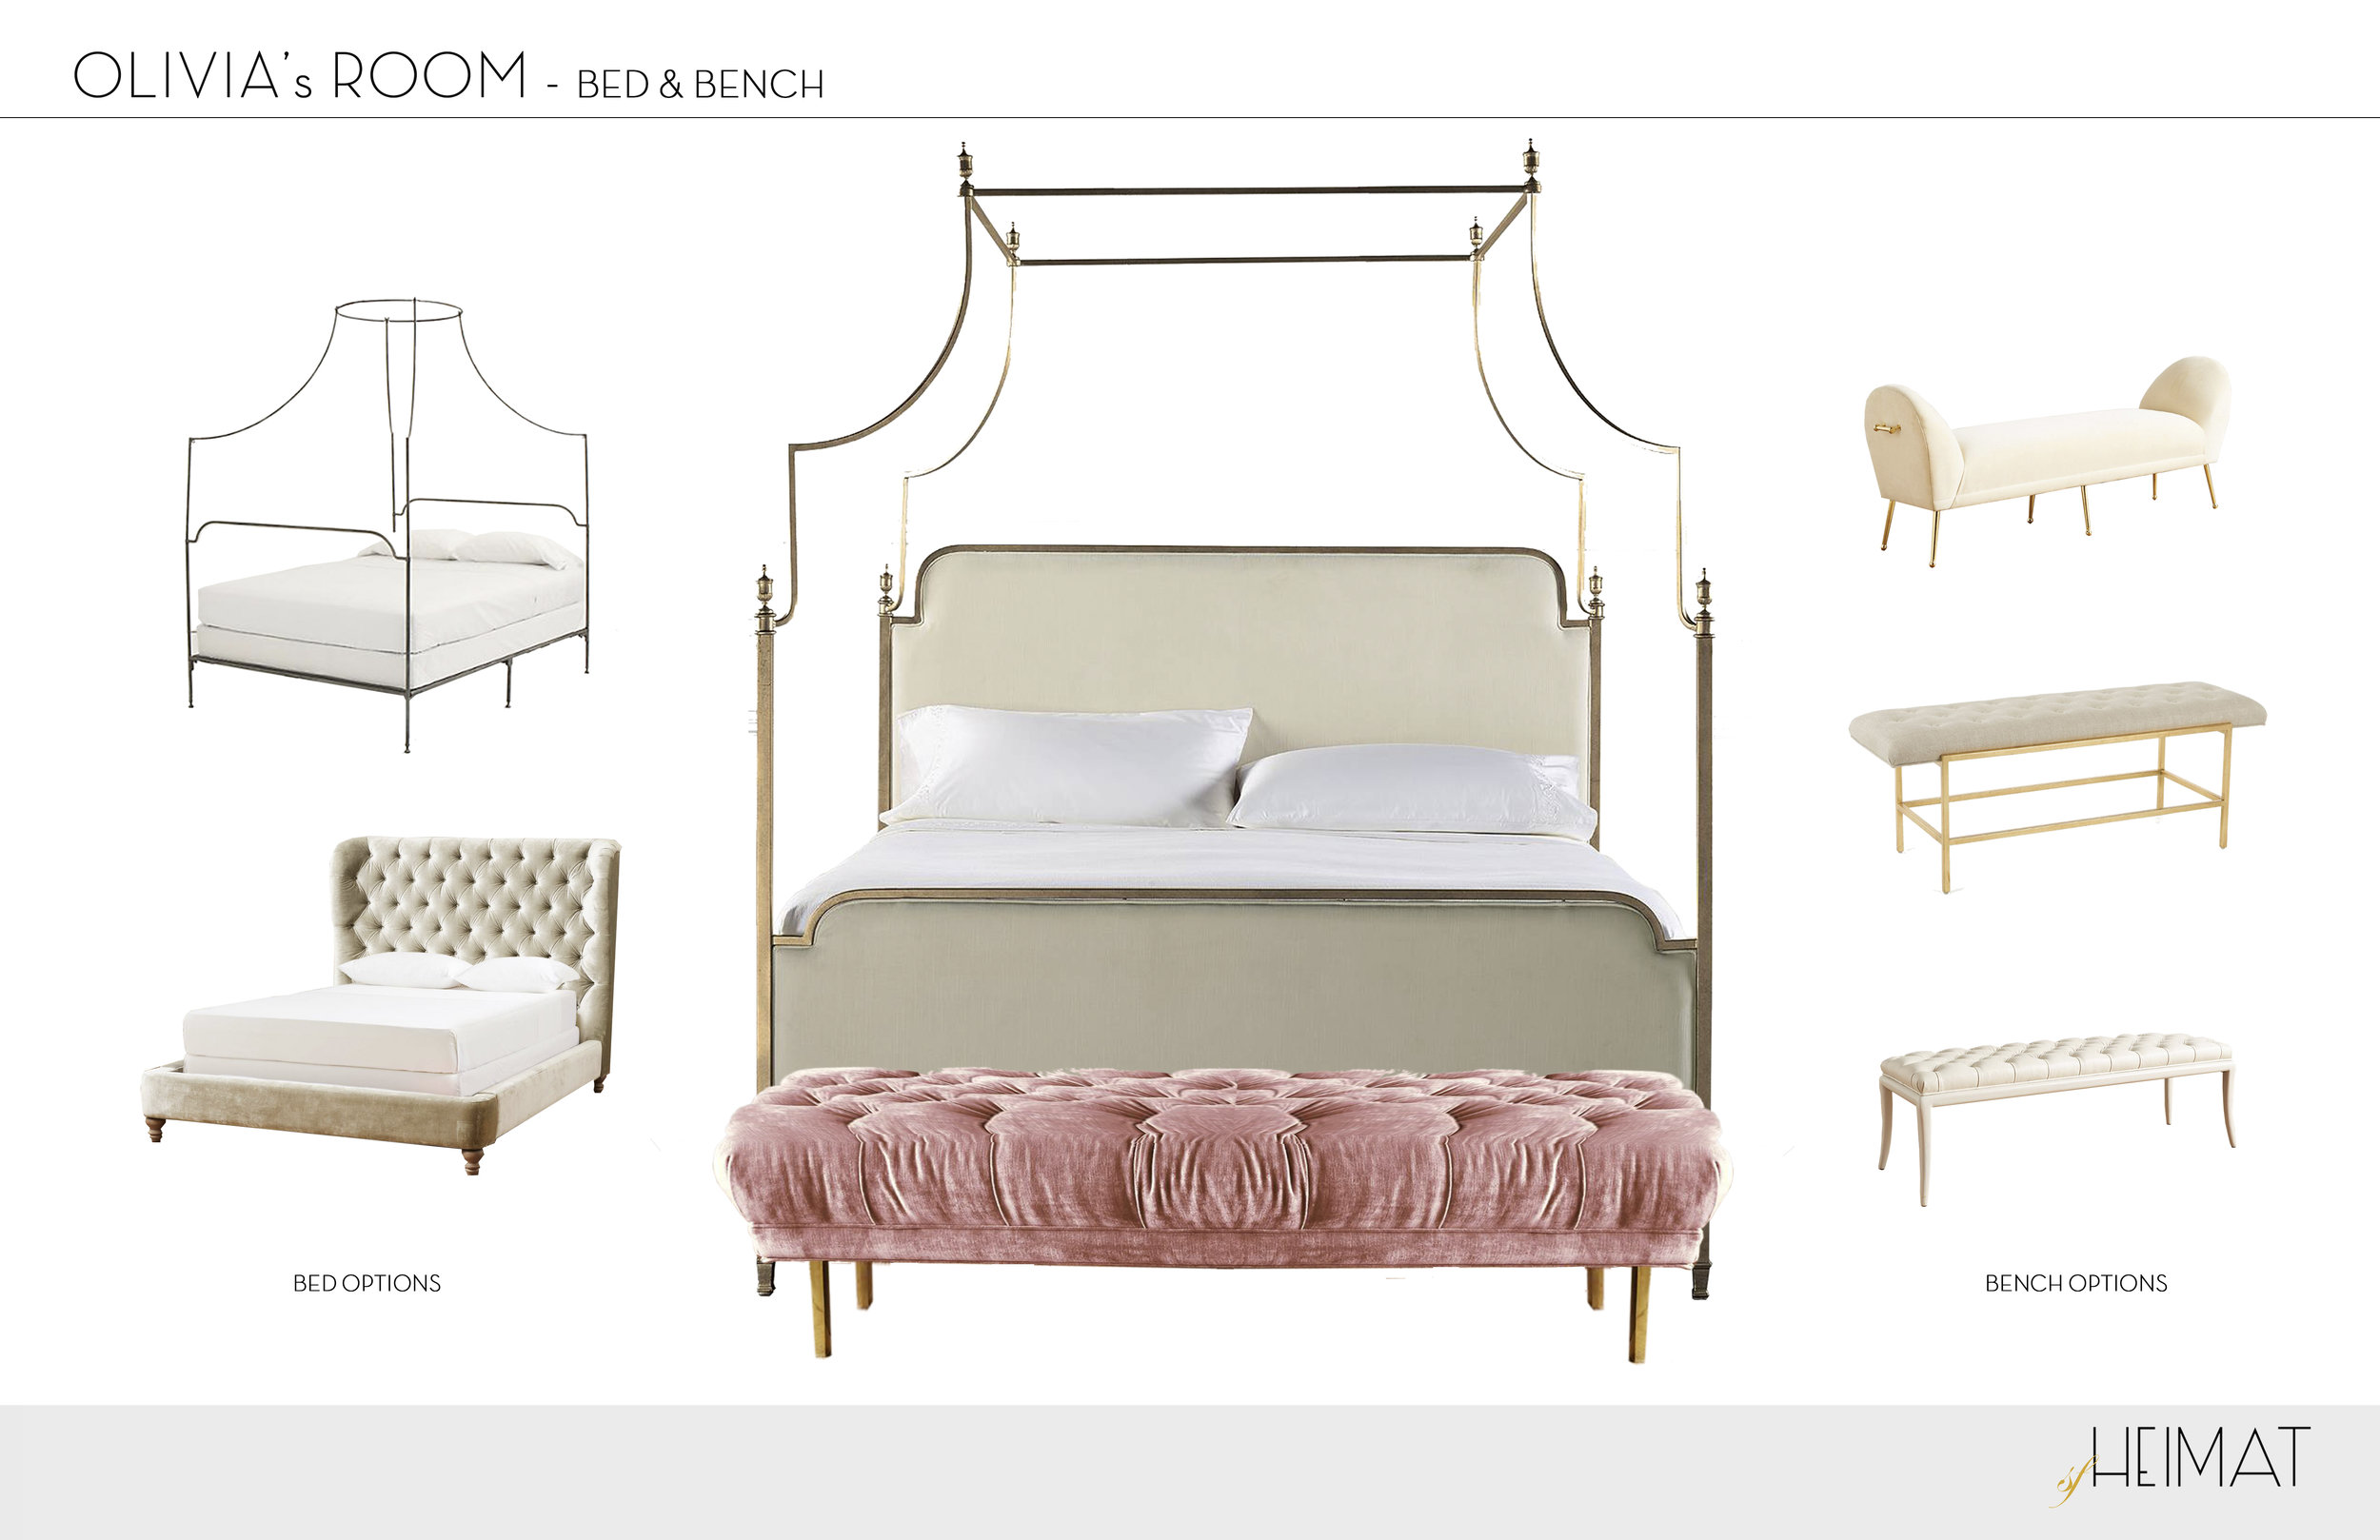 OLIVIA'S ROOM - BED _ BENCH OPTIONS.jpg